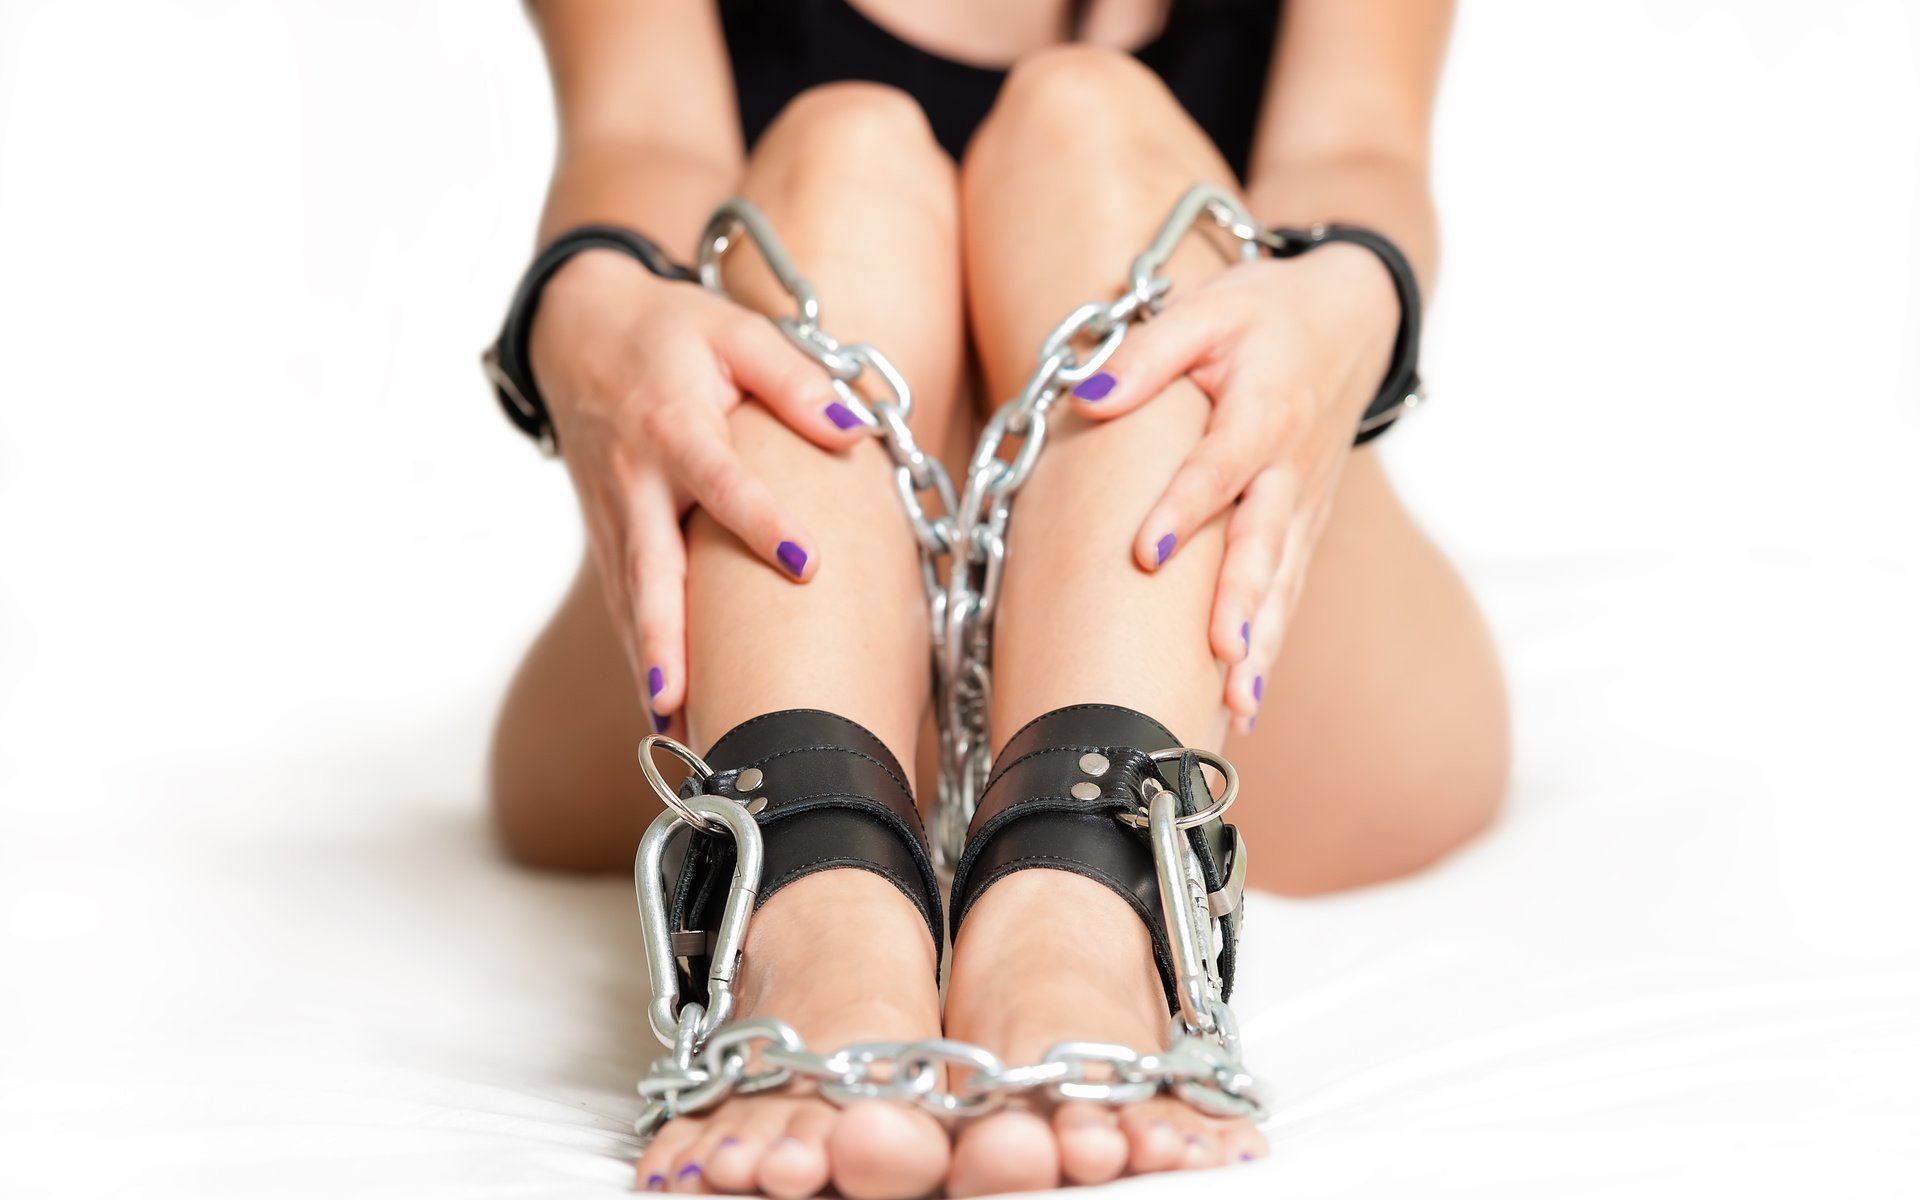 Heels and chains - young, woman, temptation, style, bondage, slave.